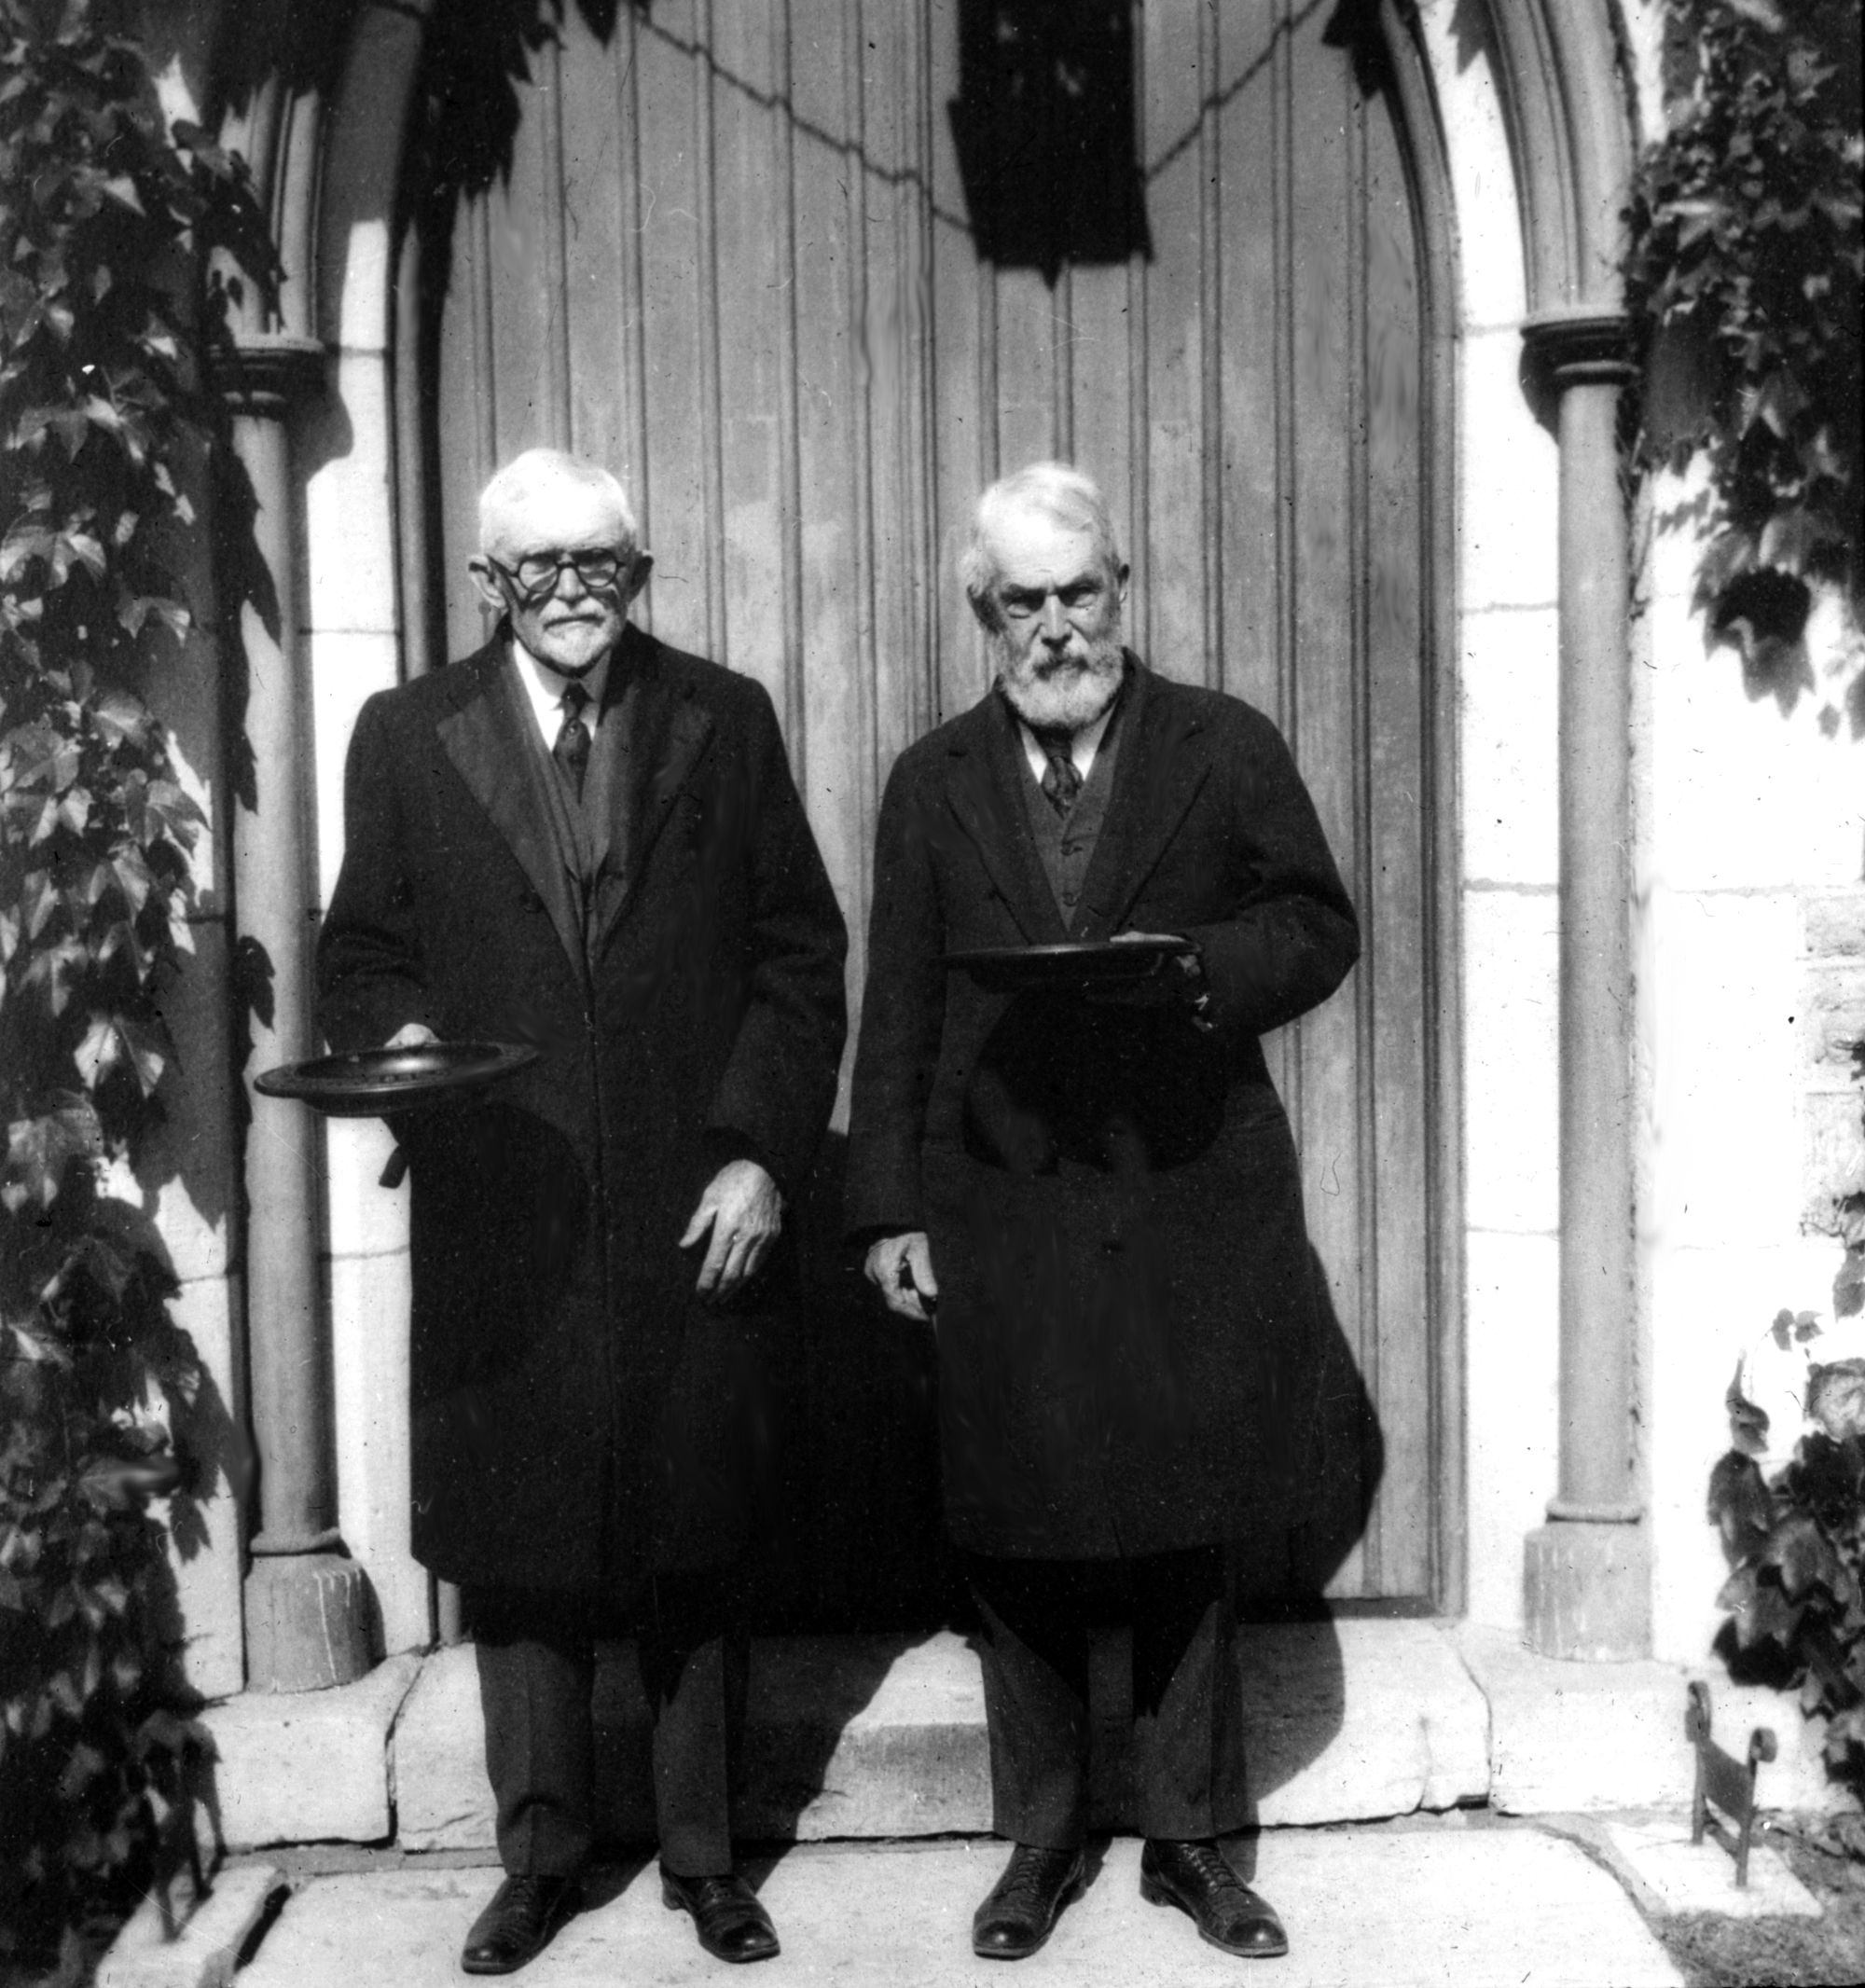 Oliver Hyatt with Col. Alexander Crane. They were vestrymen at St. James the Less Church, 1923.